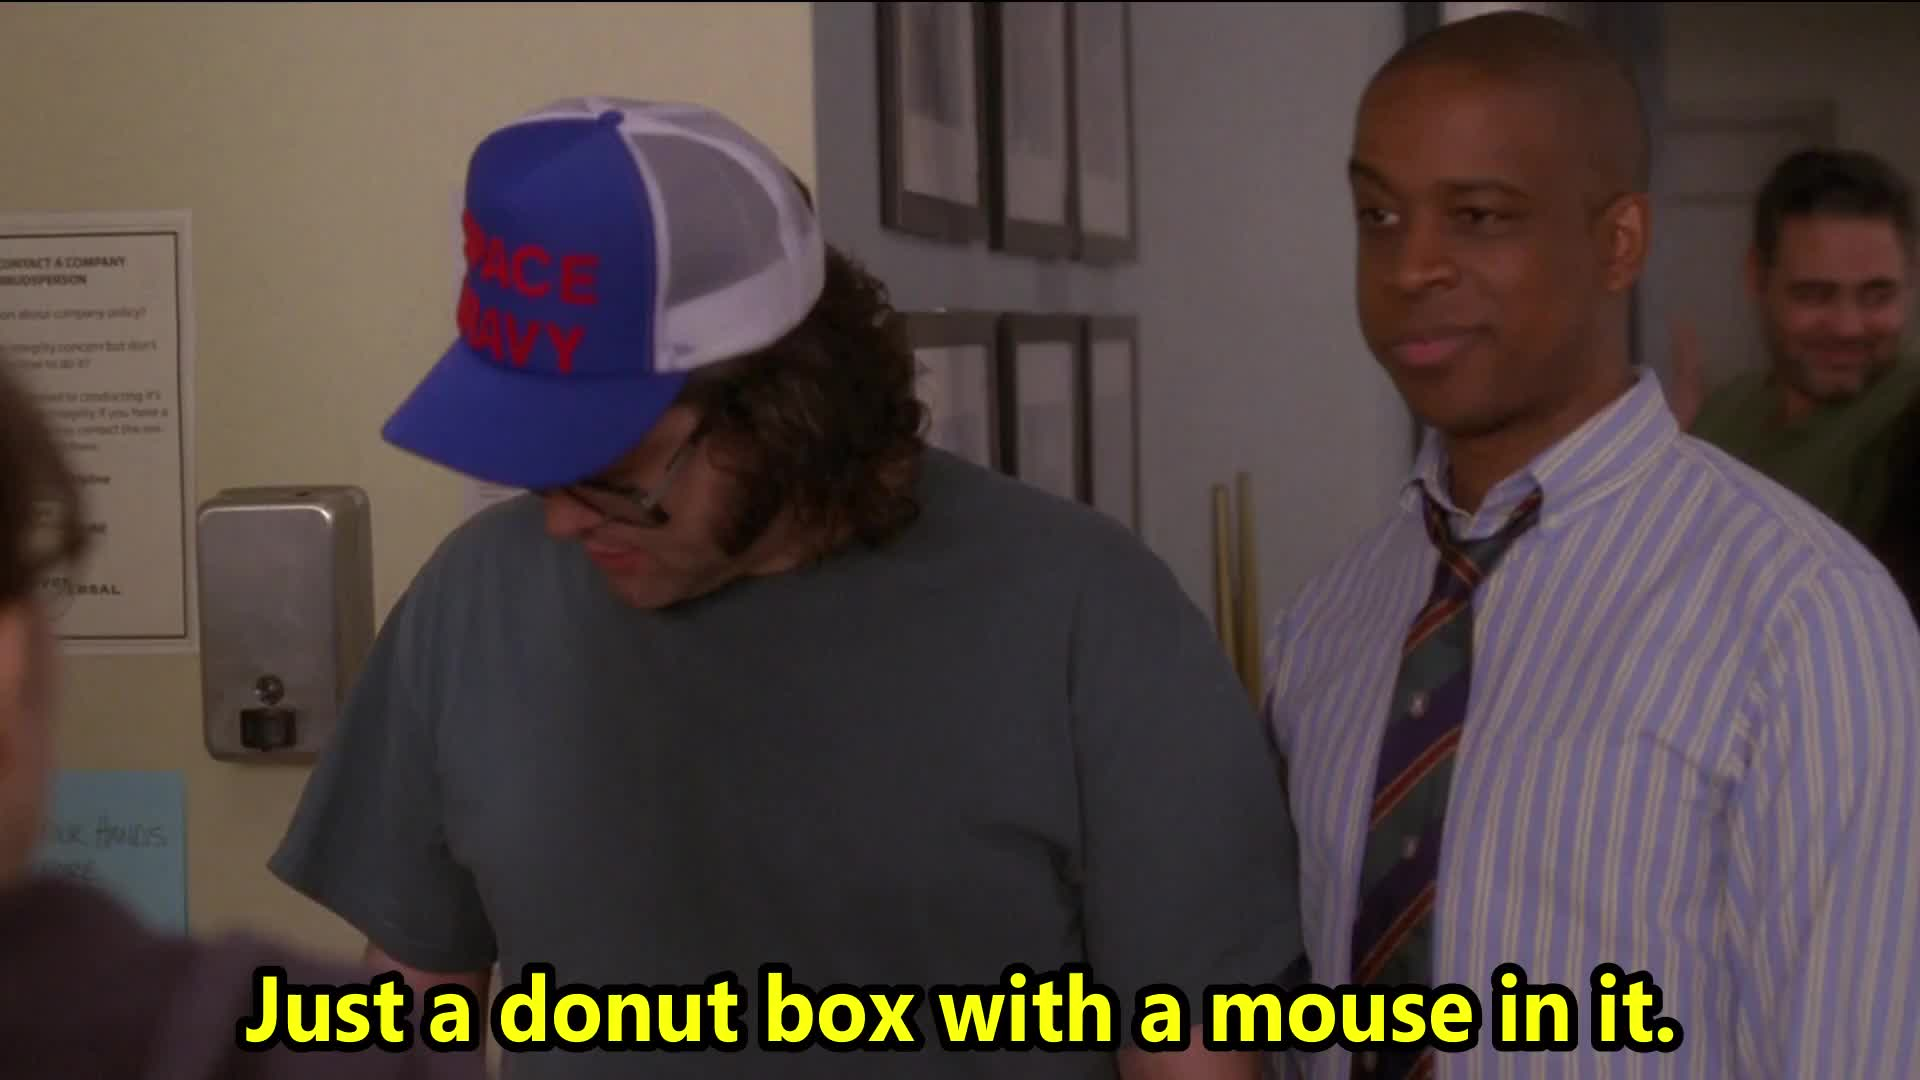 30 rock, celebs, donuts, frank, into, jack mcbrayer, lemon, liz, lutz, mouse, prank, pranksmen, running, s03e19, television, the ones, tina fey, toofer, tv, wall, Lutz gets pranked with a mouse GIFs